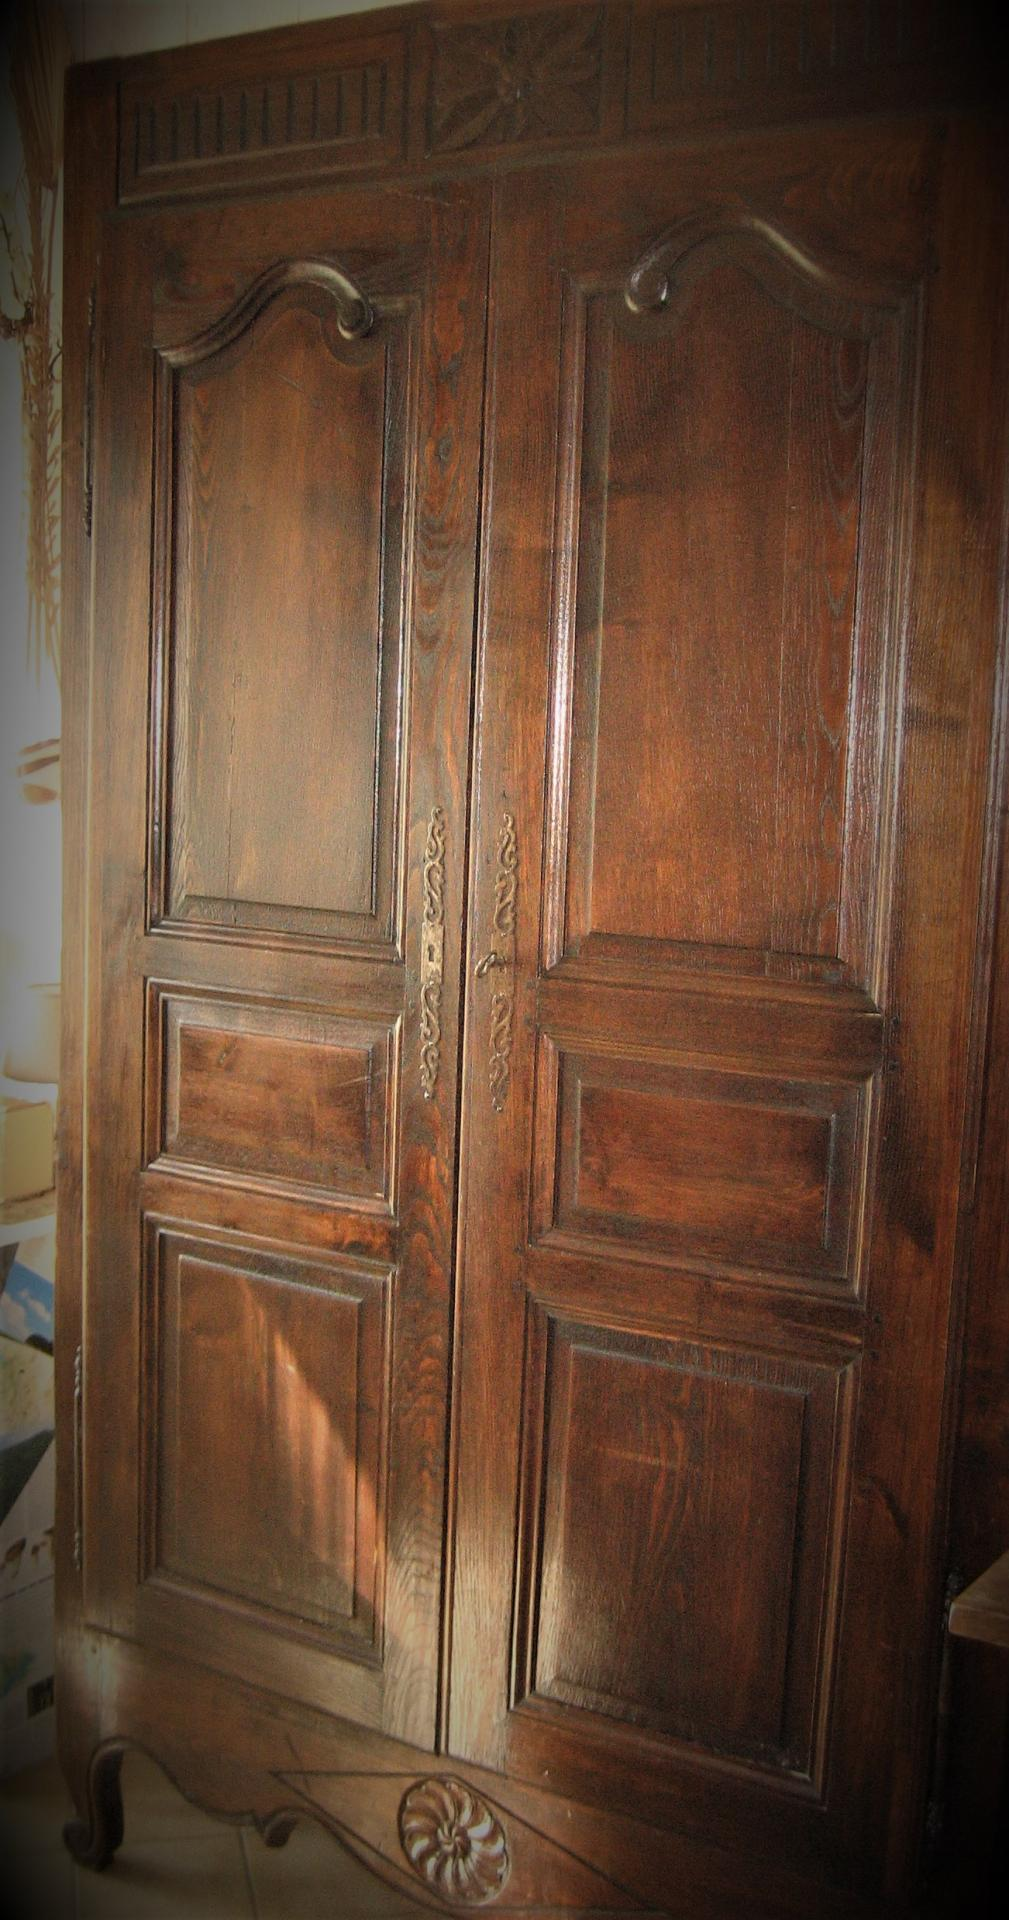 comment restaurer une armoire ancienne affordable relooker armoire ancienne relooker armoire. Black Bedroom Furniture Sets. Home Design Ideas